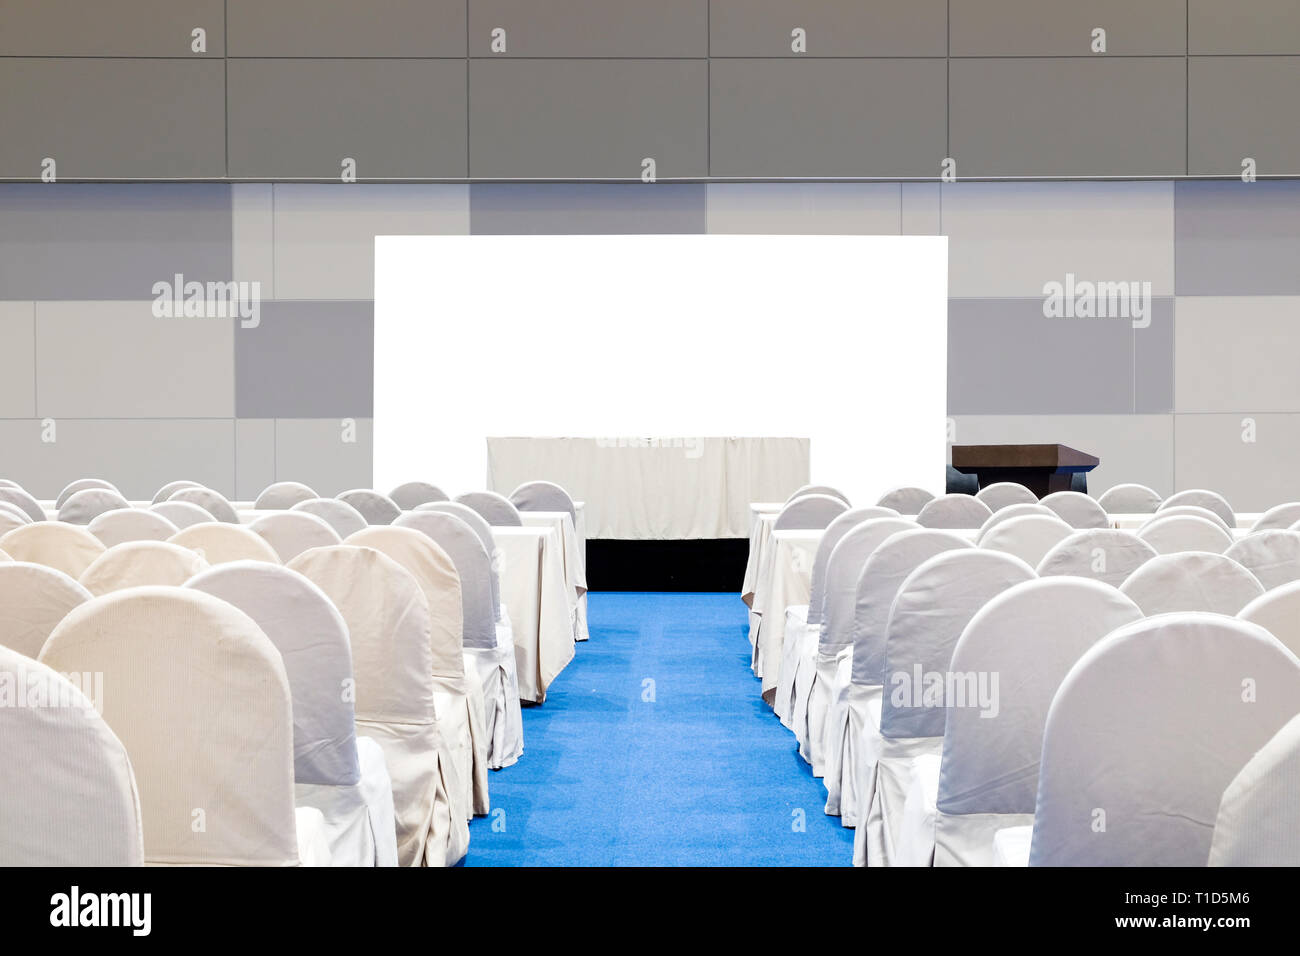 Empty meeting room with stage, table, isolated on white background, podium and chairs for business conference seminar. - Stock Image